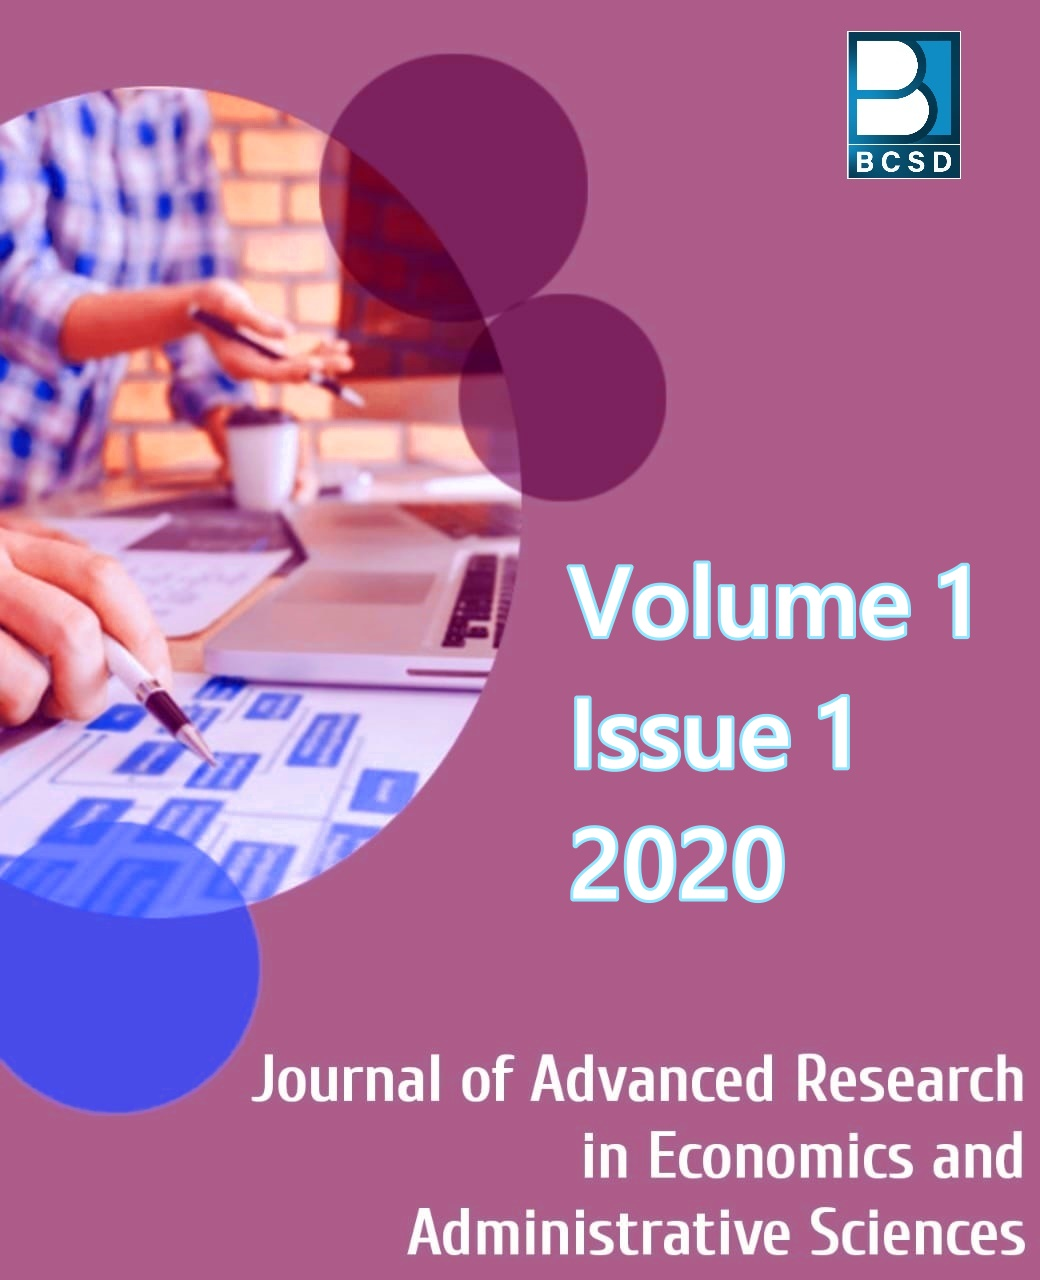 View Vol. 1 No. 1 (2020): Journal of Advanced Research in Economics and Administrative Sciences